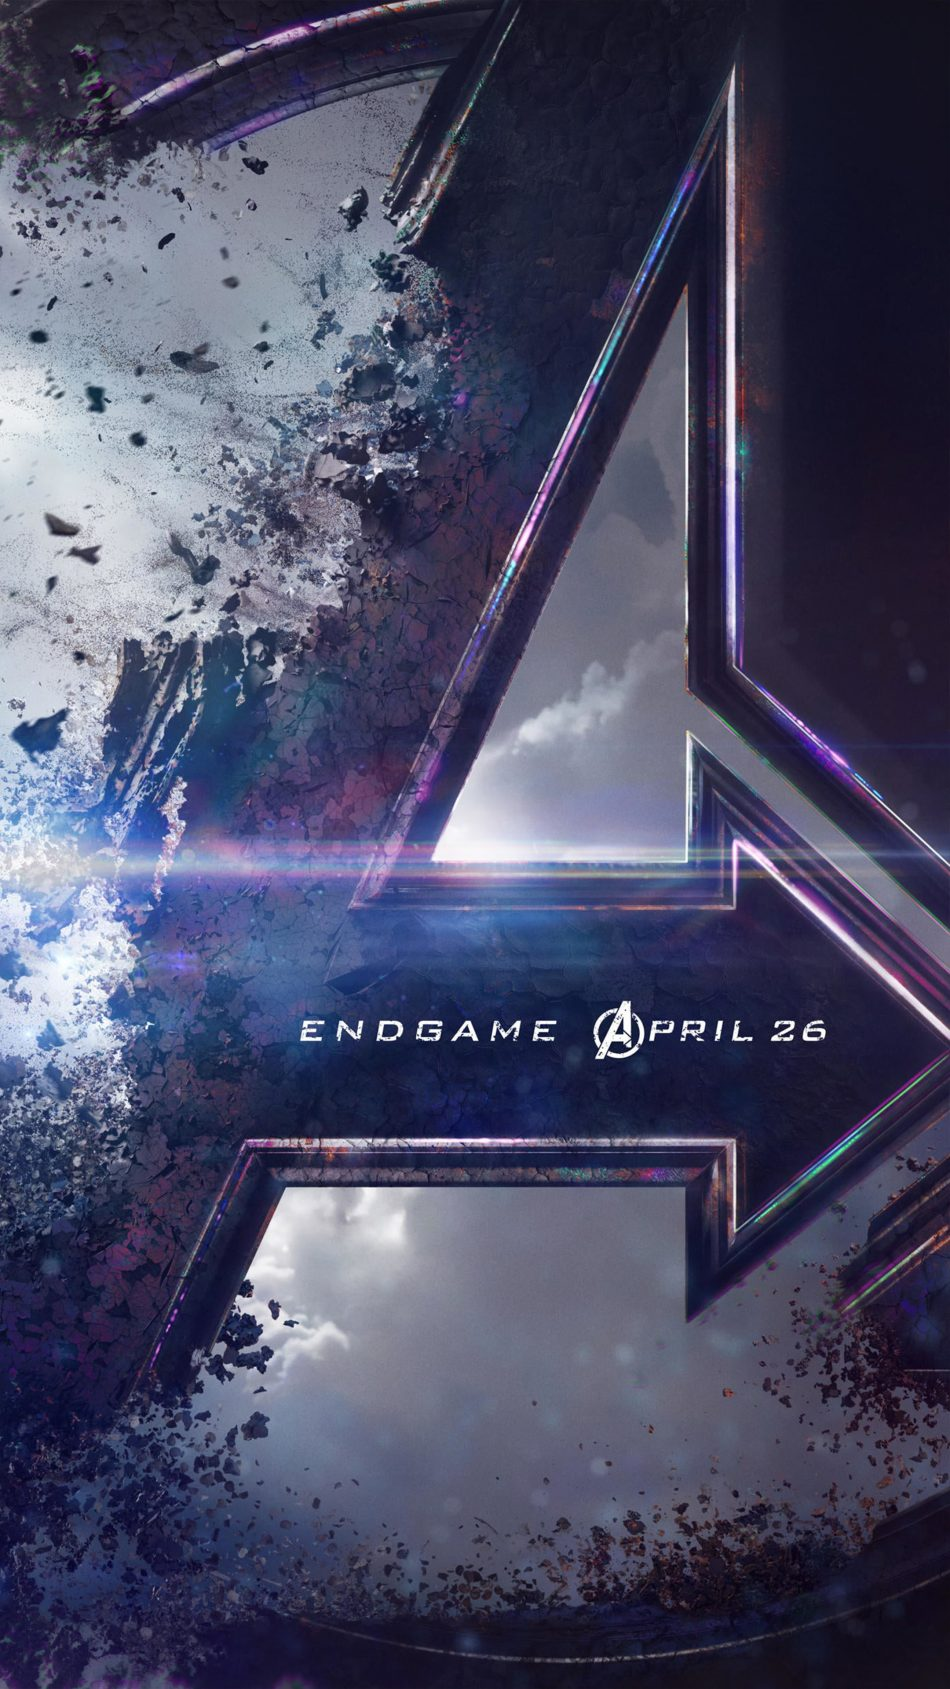 Avengers Endgame Logo Free 4k Ultra Hd Mobile Wallpaper